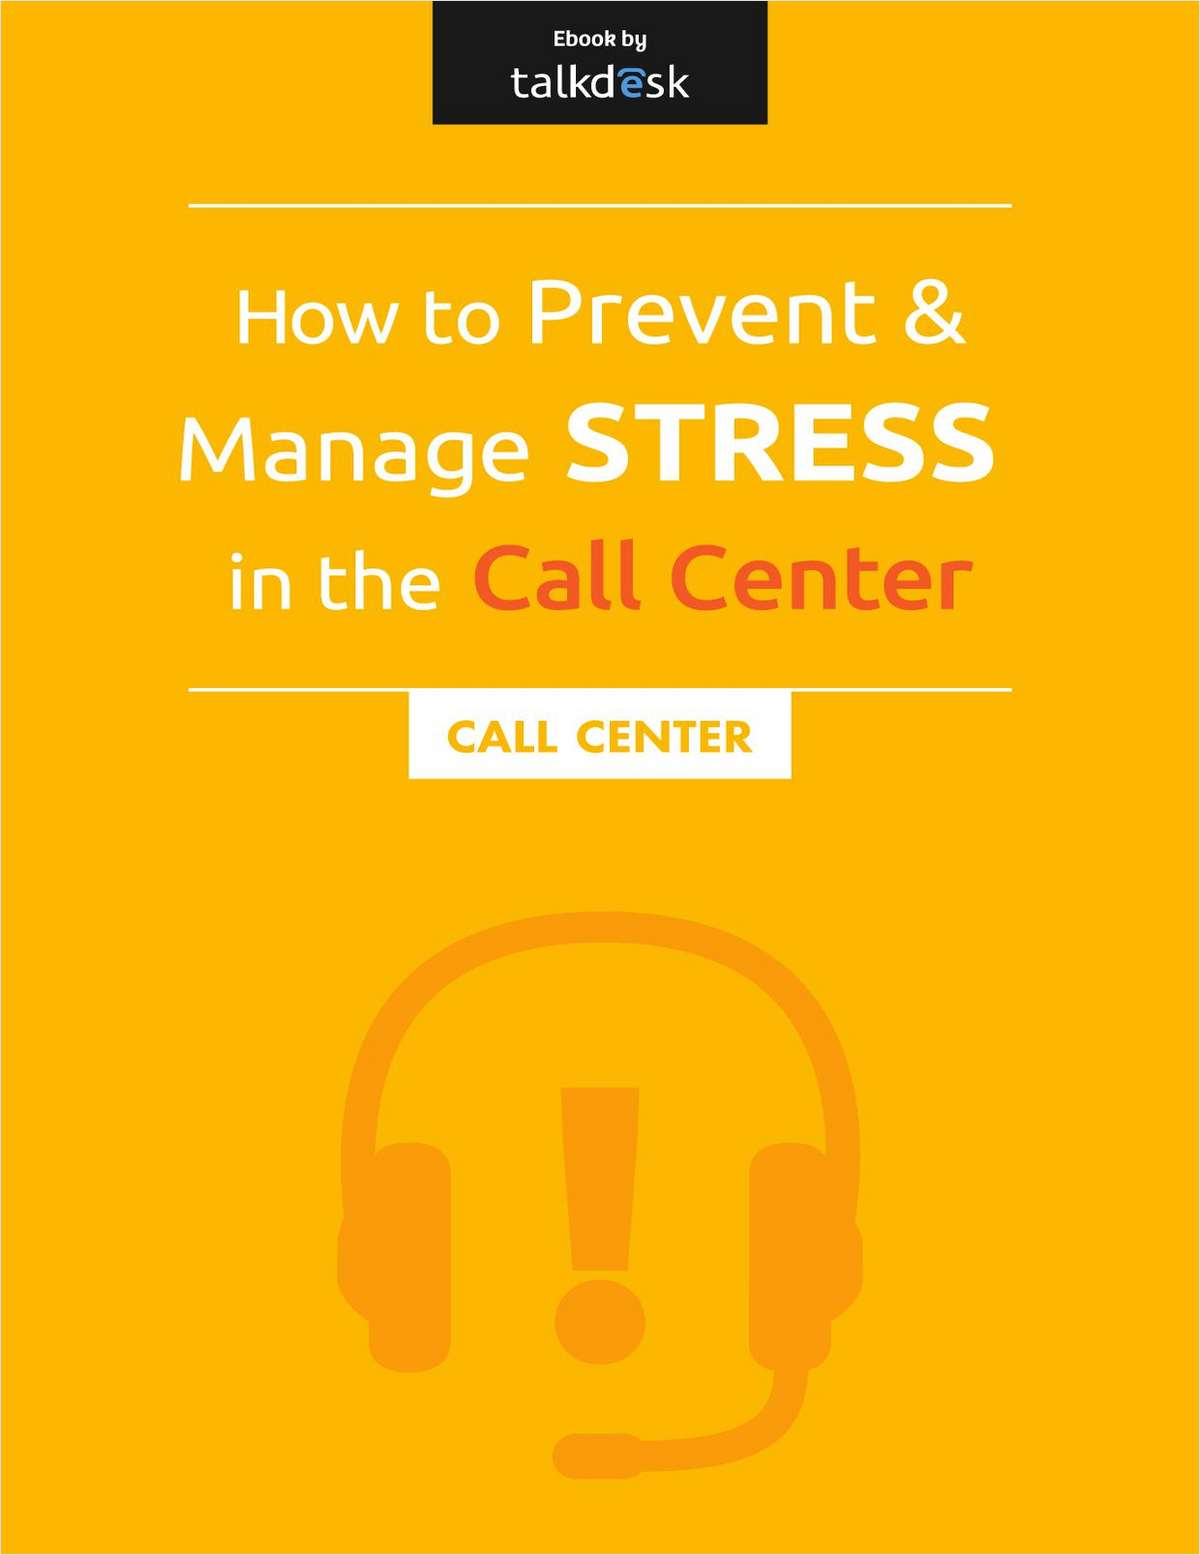 How to Prevent and Manage Stress in the Call Center